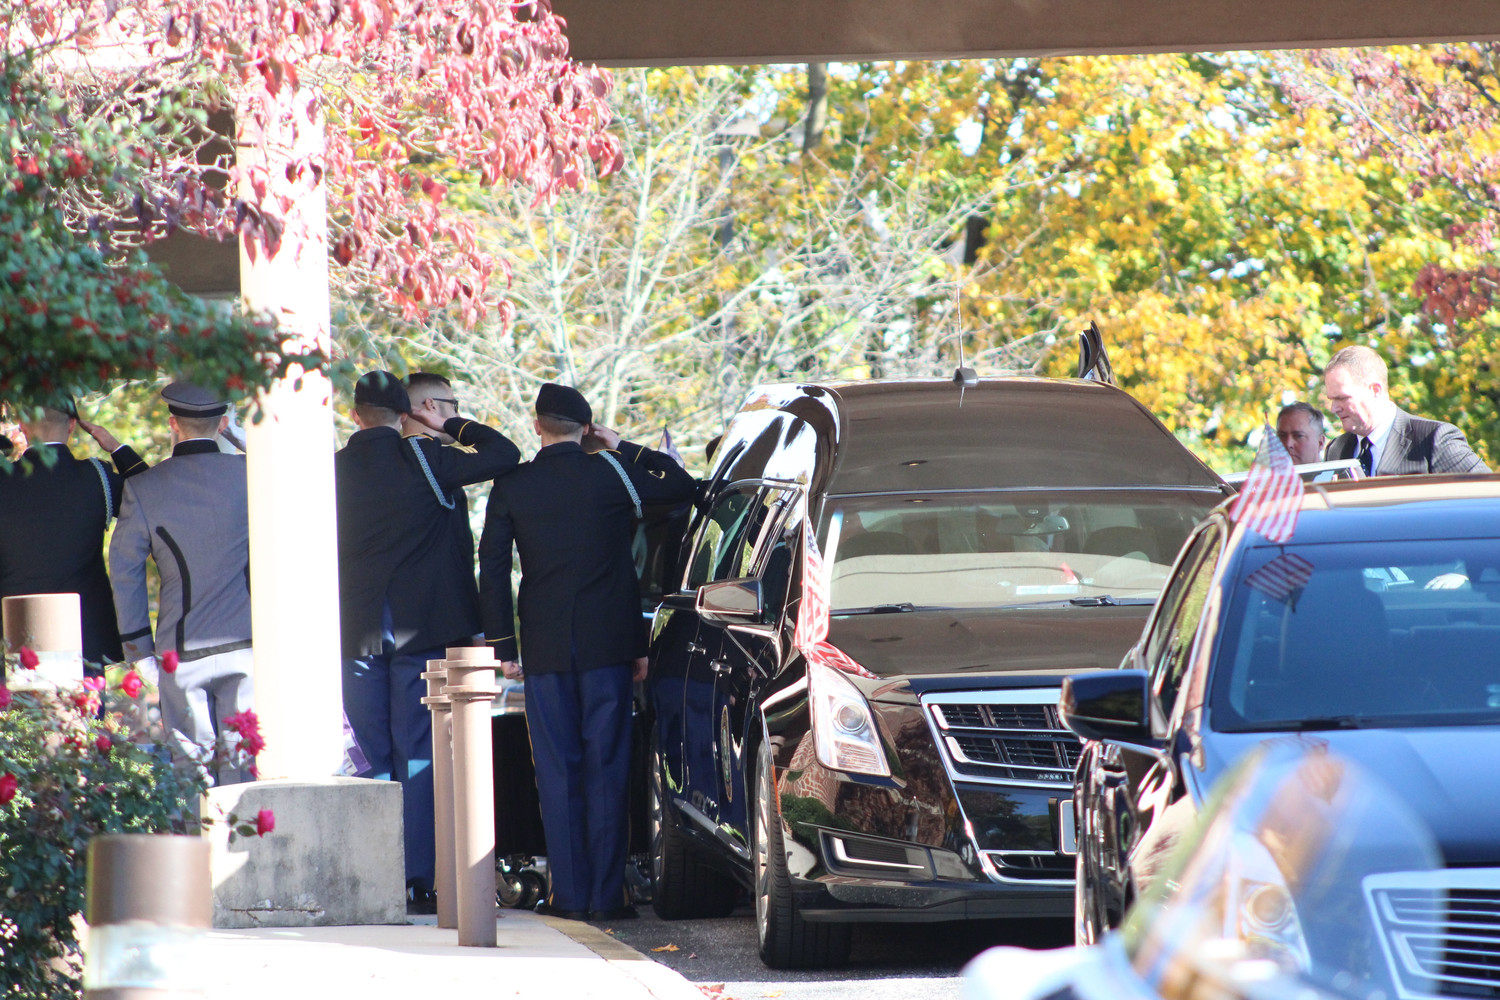 Soldiers salute as the casket is loaded into the hearse following Spc. Mason James Guckavan's funeral on Nov. 8 at Seven Sorrows of the Blessed Virgin Mary Catholic Church in Middletown.